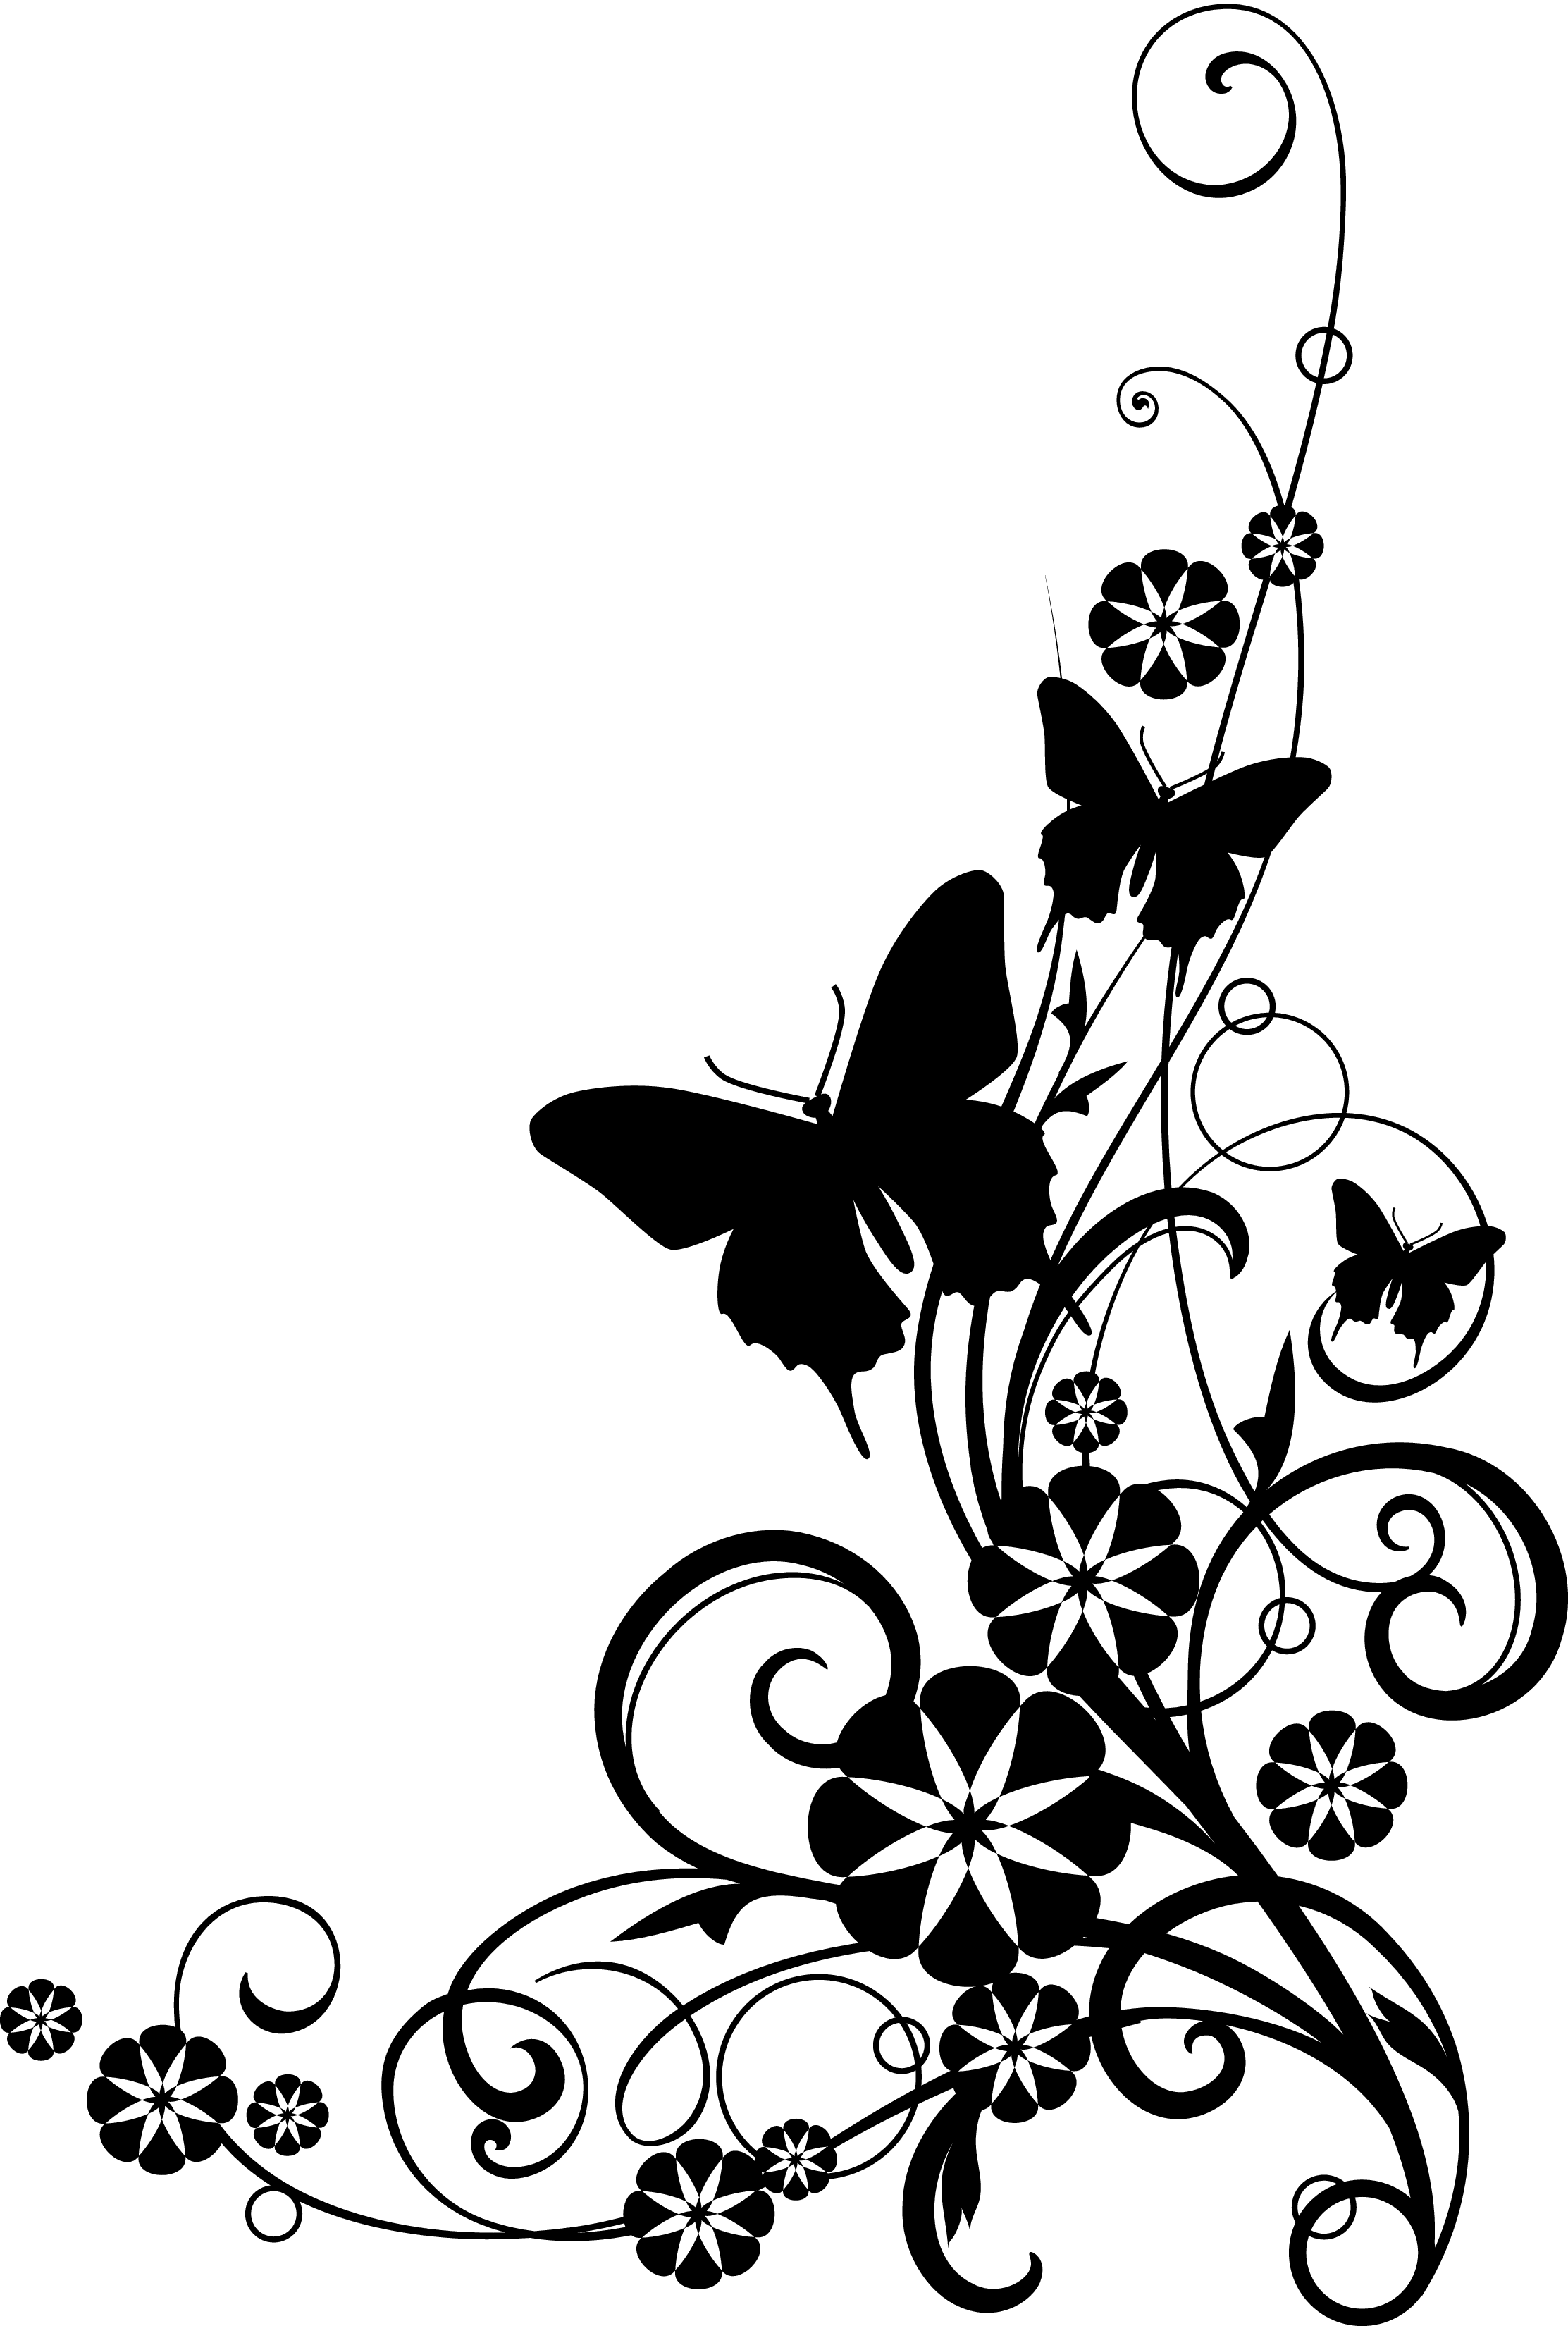 Clipart black and white flower design png freeuse library 8c59ec4066e54d3f207a7d2aa92e8274_vine-clipart-black-and-white ... png freeuse library